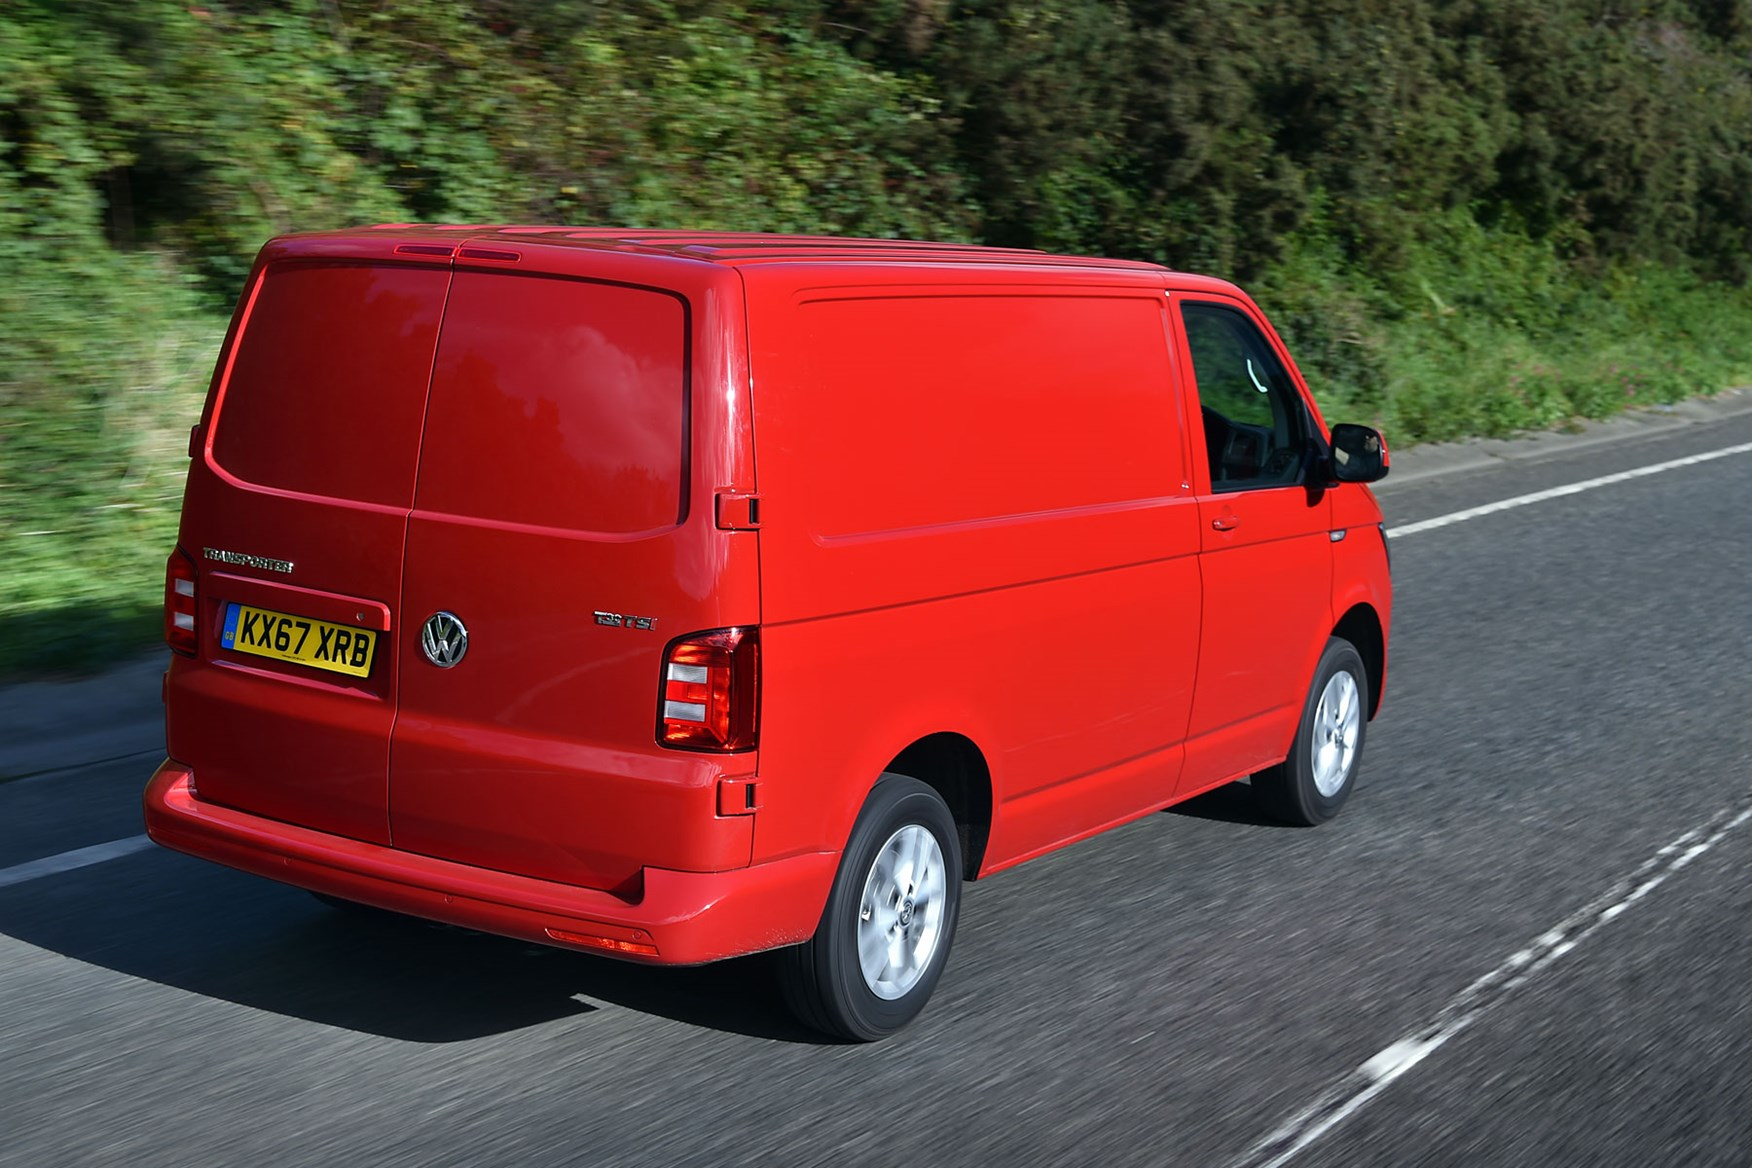 VW Transporter (2015-on) TSI driving rear view